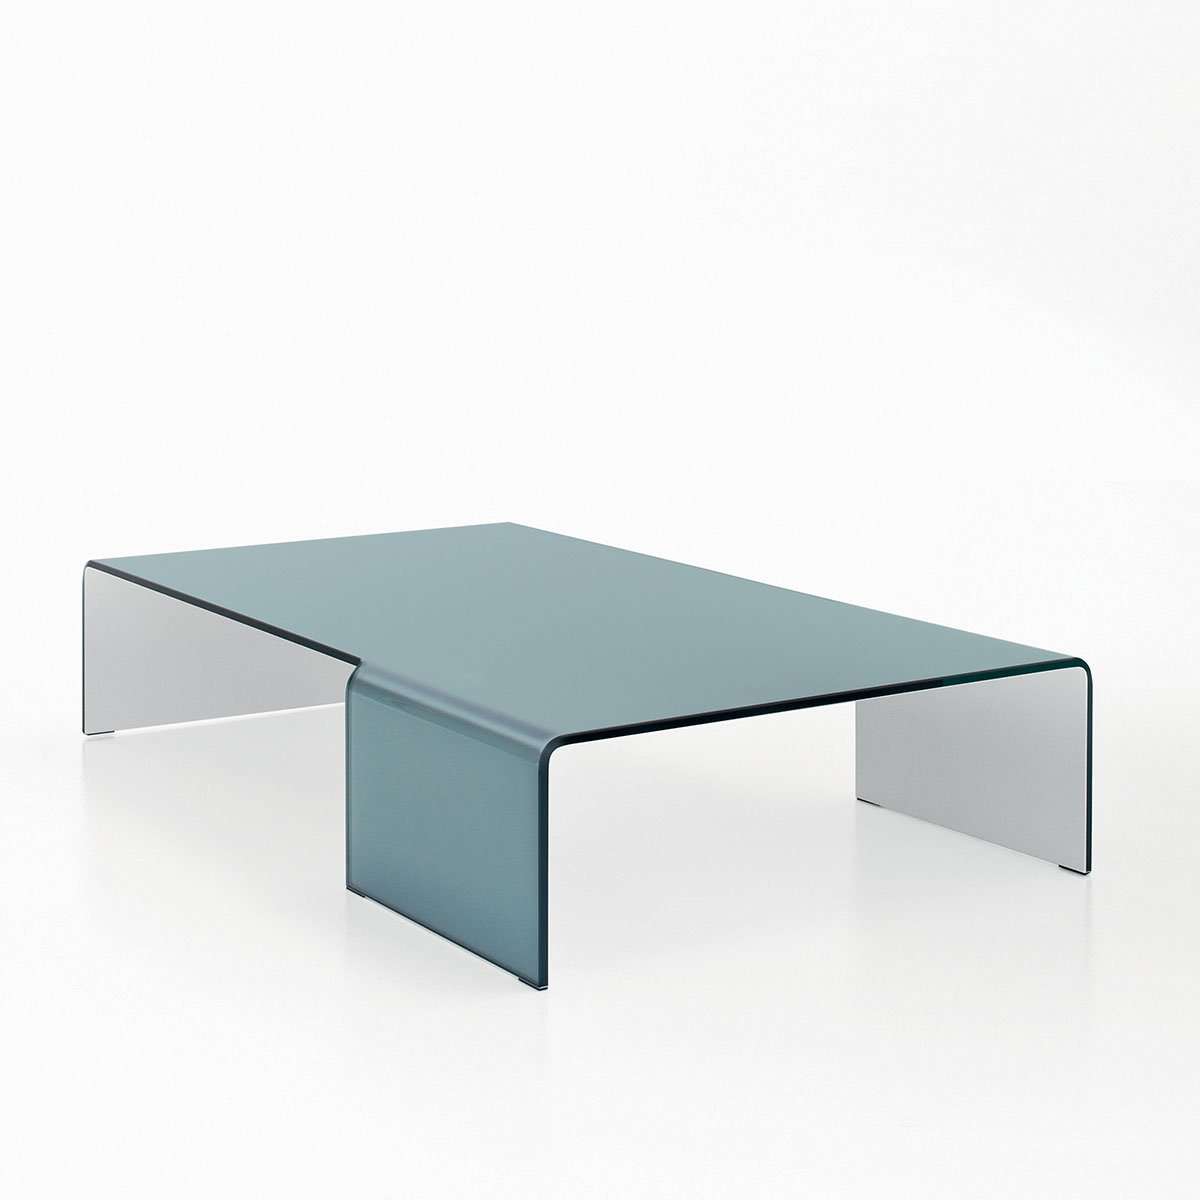 Spider Curved Glass Coffee Table By Sovet Italia Klarity